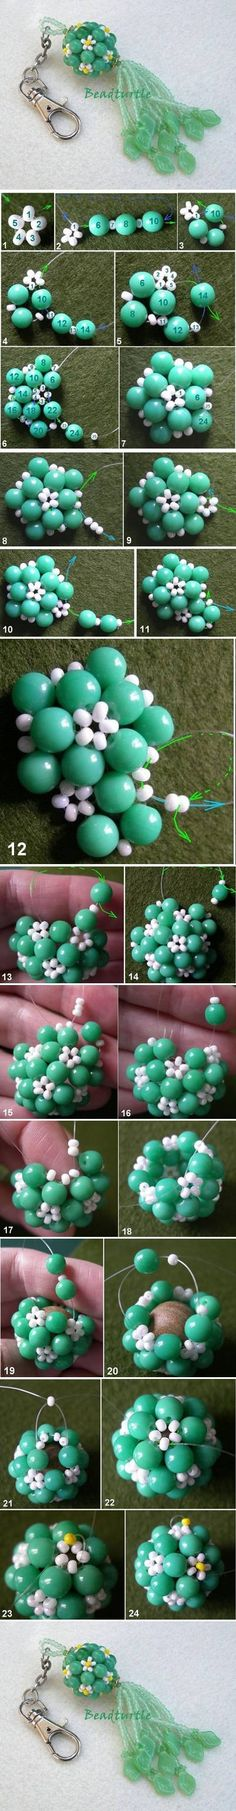 How to Make Key Chain Beads Charm step by step DIY tutorial instructions How to Make Key Chain Beads Charm step by step DIY tutorial instruc...